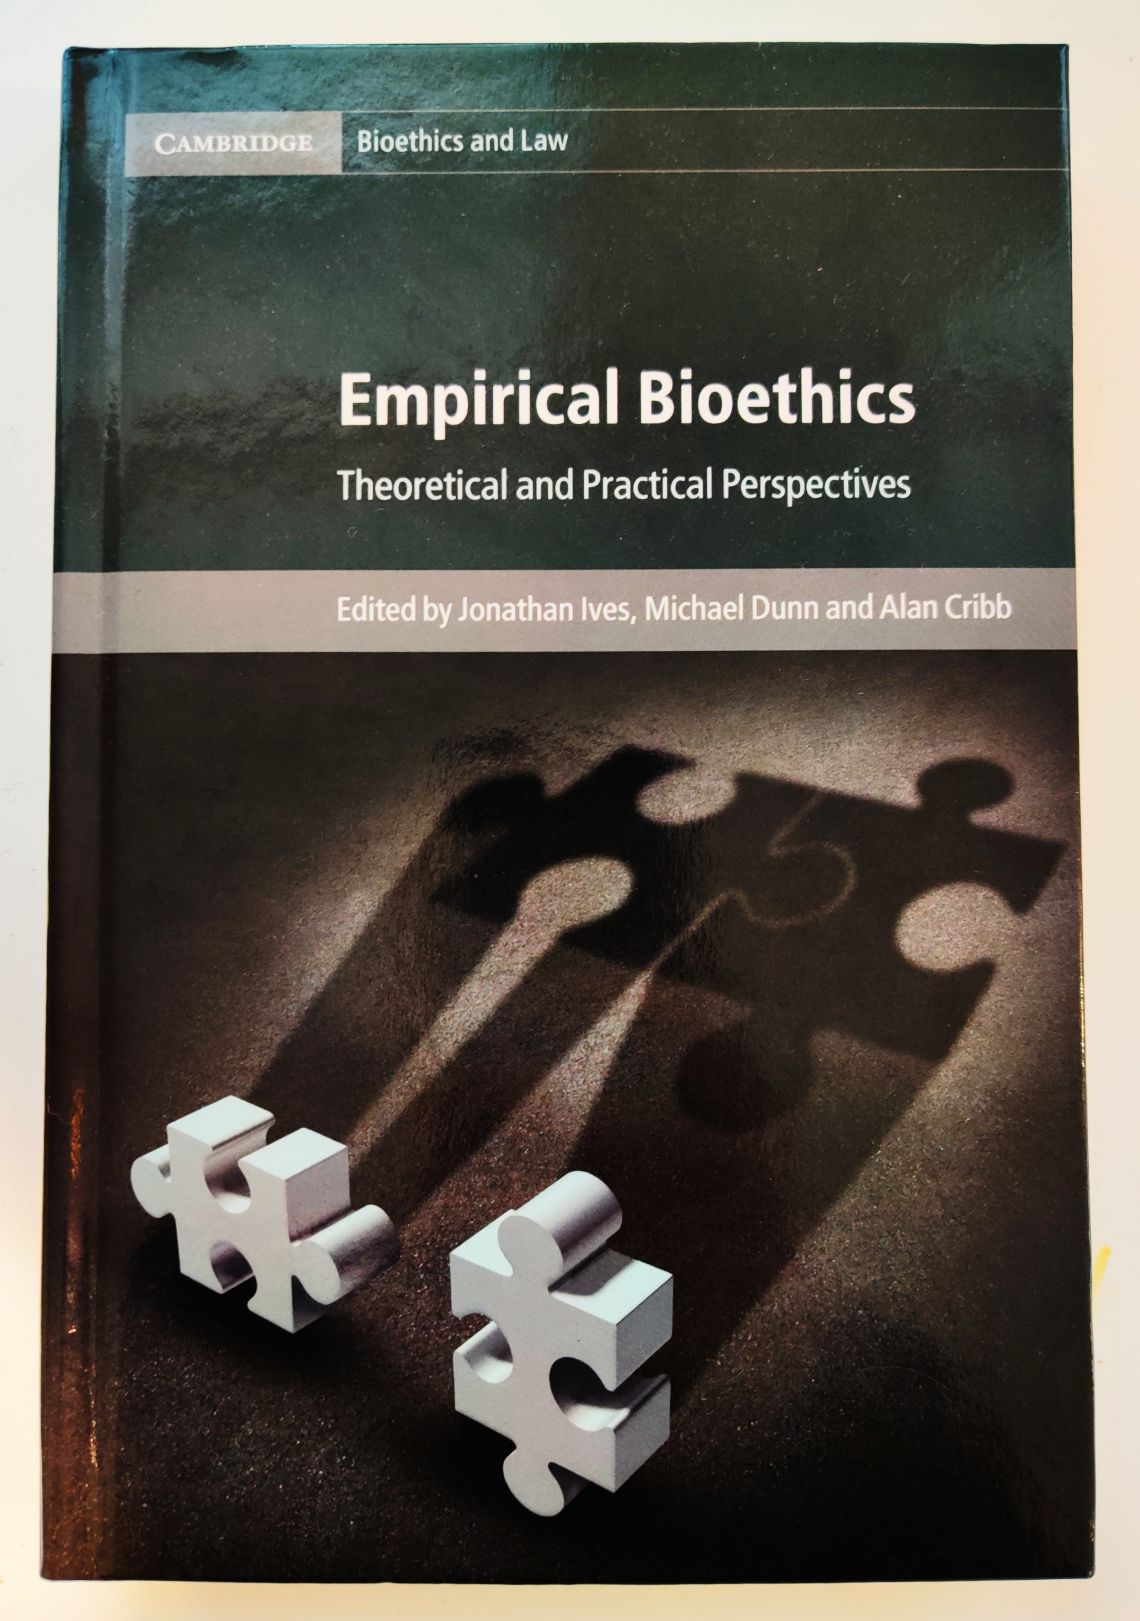 New Book - Empirical Bioethics: Theoretical and Practical Perspectives